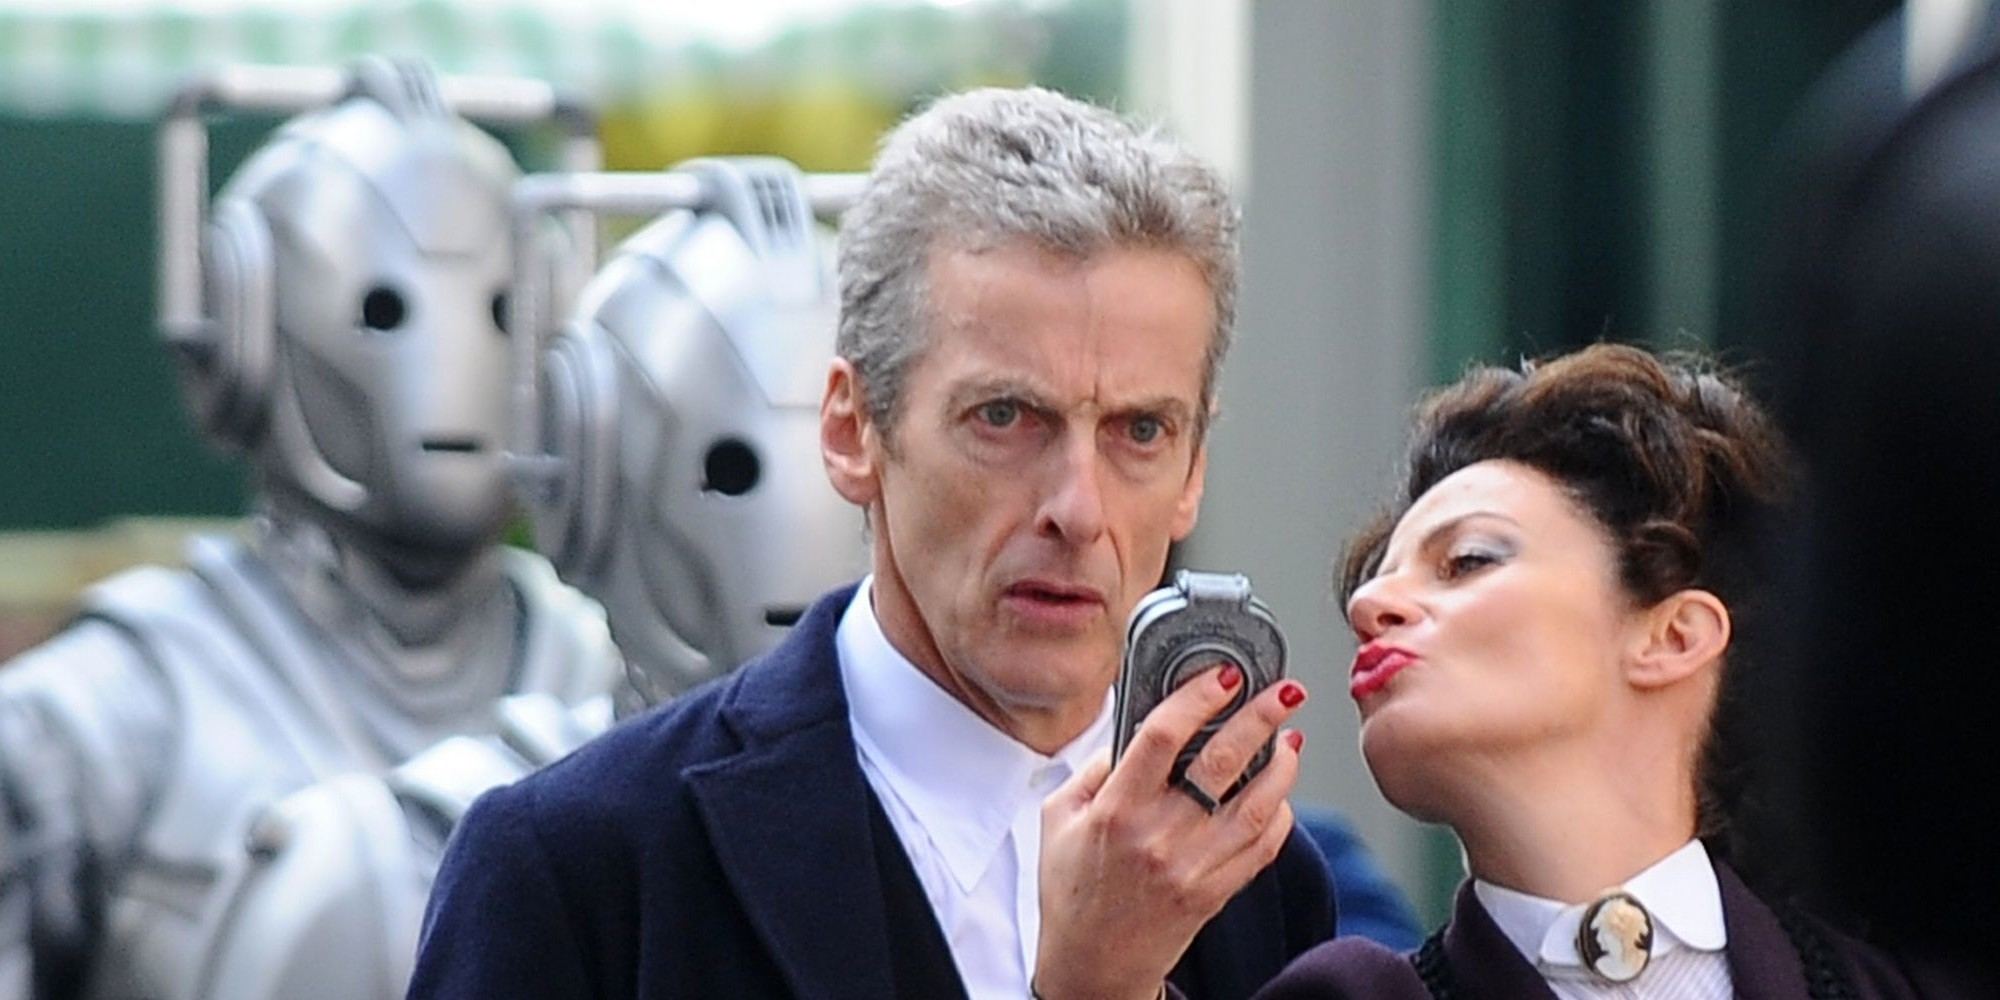 Peter Capaldi as The Doctor and Michelle Gomez as Missy in Doctor Who